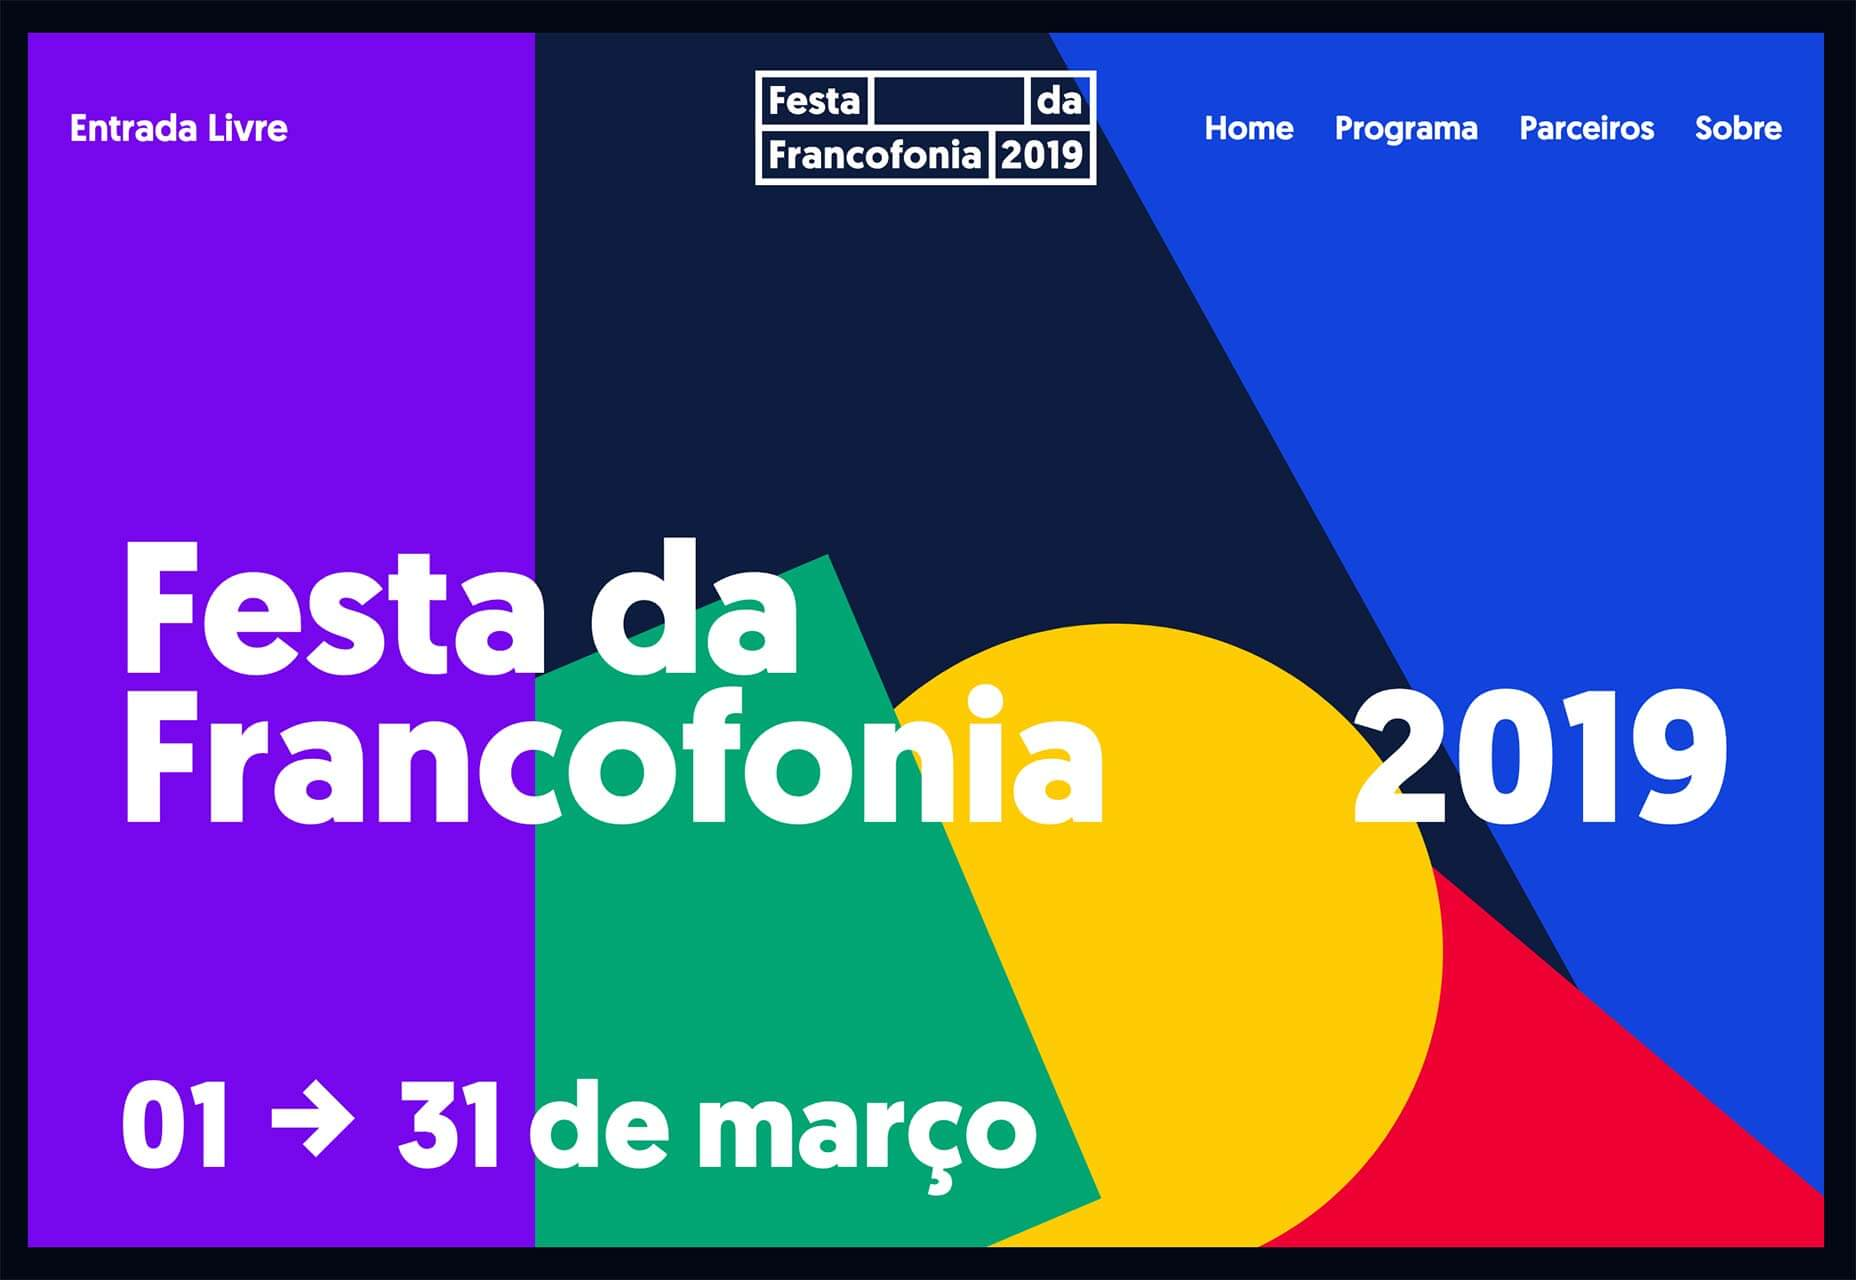 20 Freshest Web Designs, April 2019